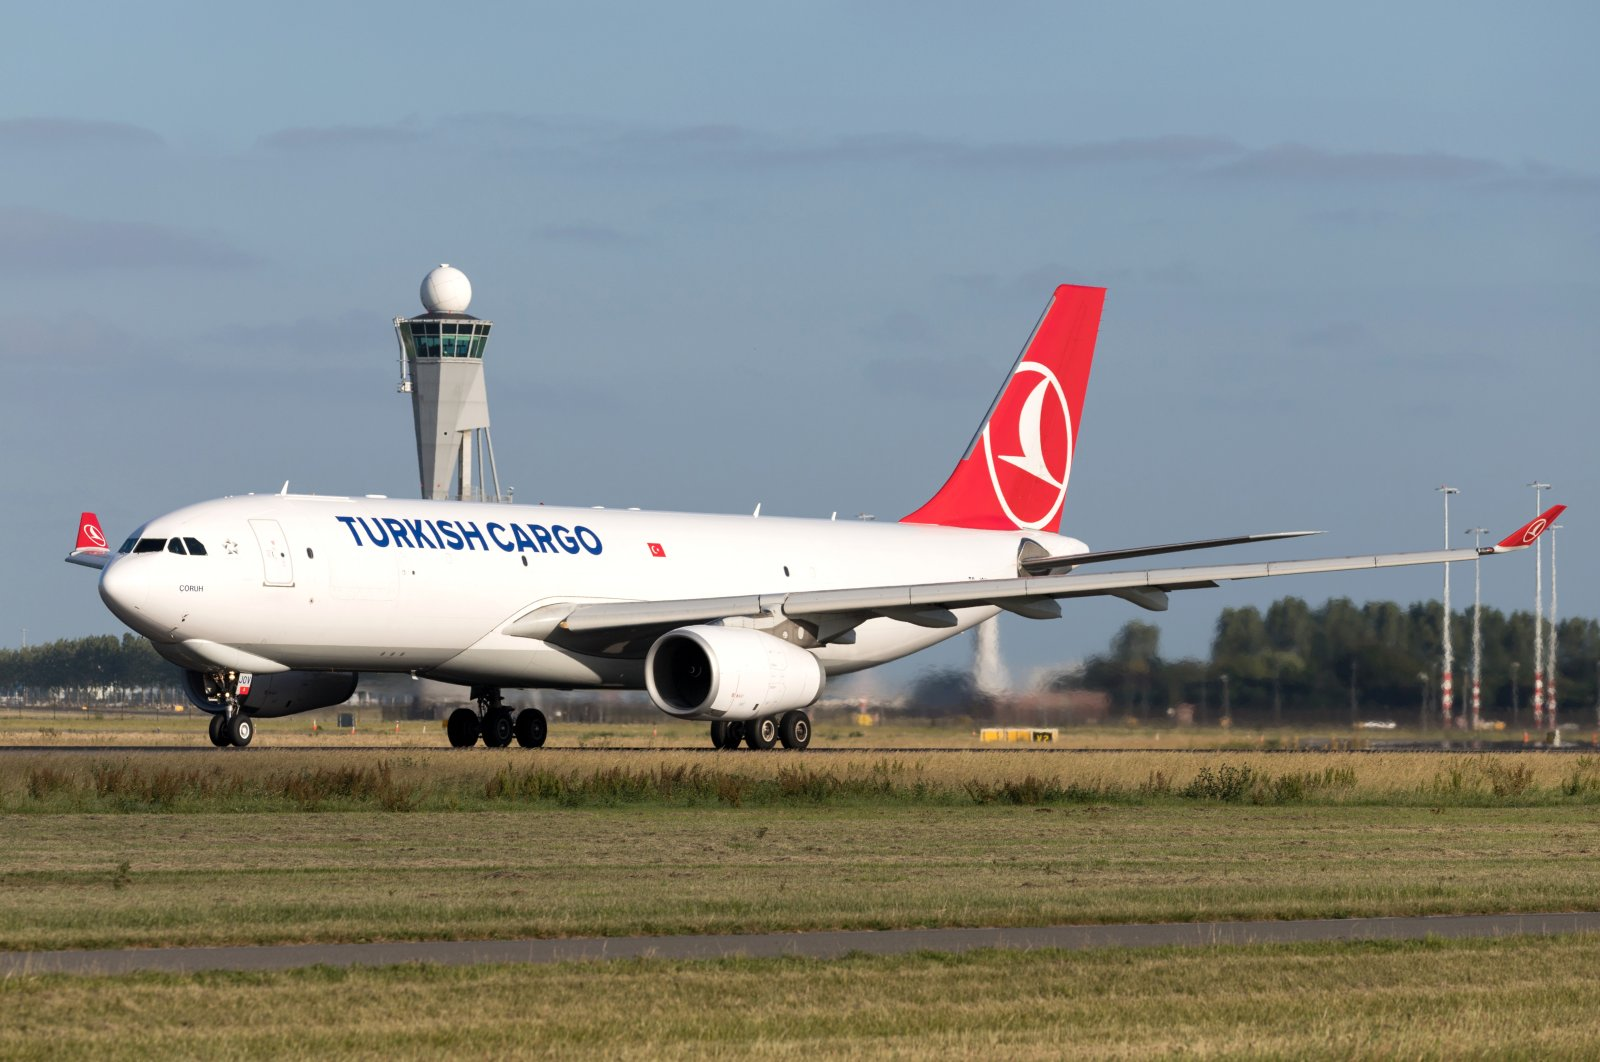 A Turkish Cargo plane lands at Amsterdam Schiphol Airport, the Netherlands, June 27, 2019. (Shutterstock Photo)